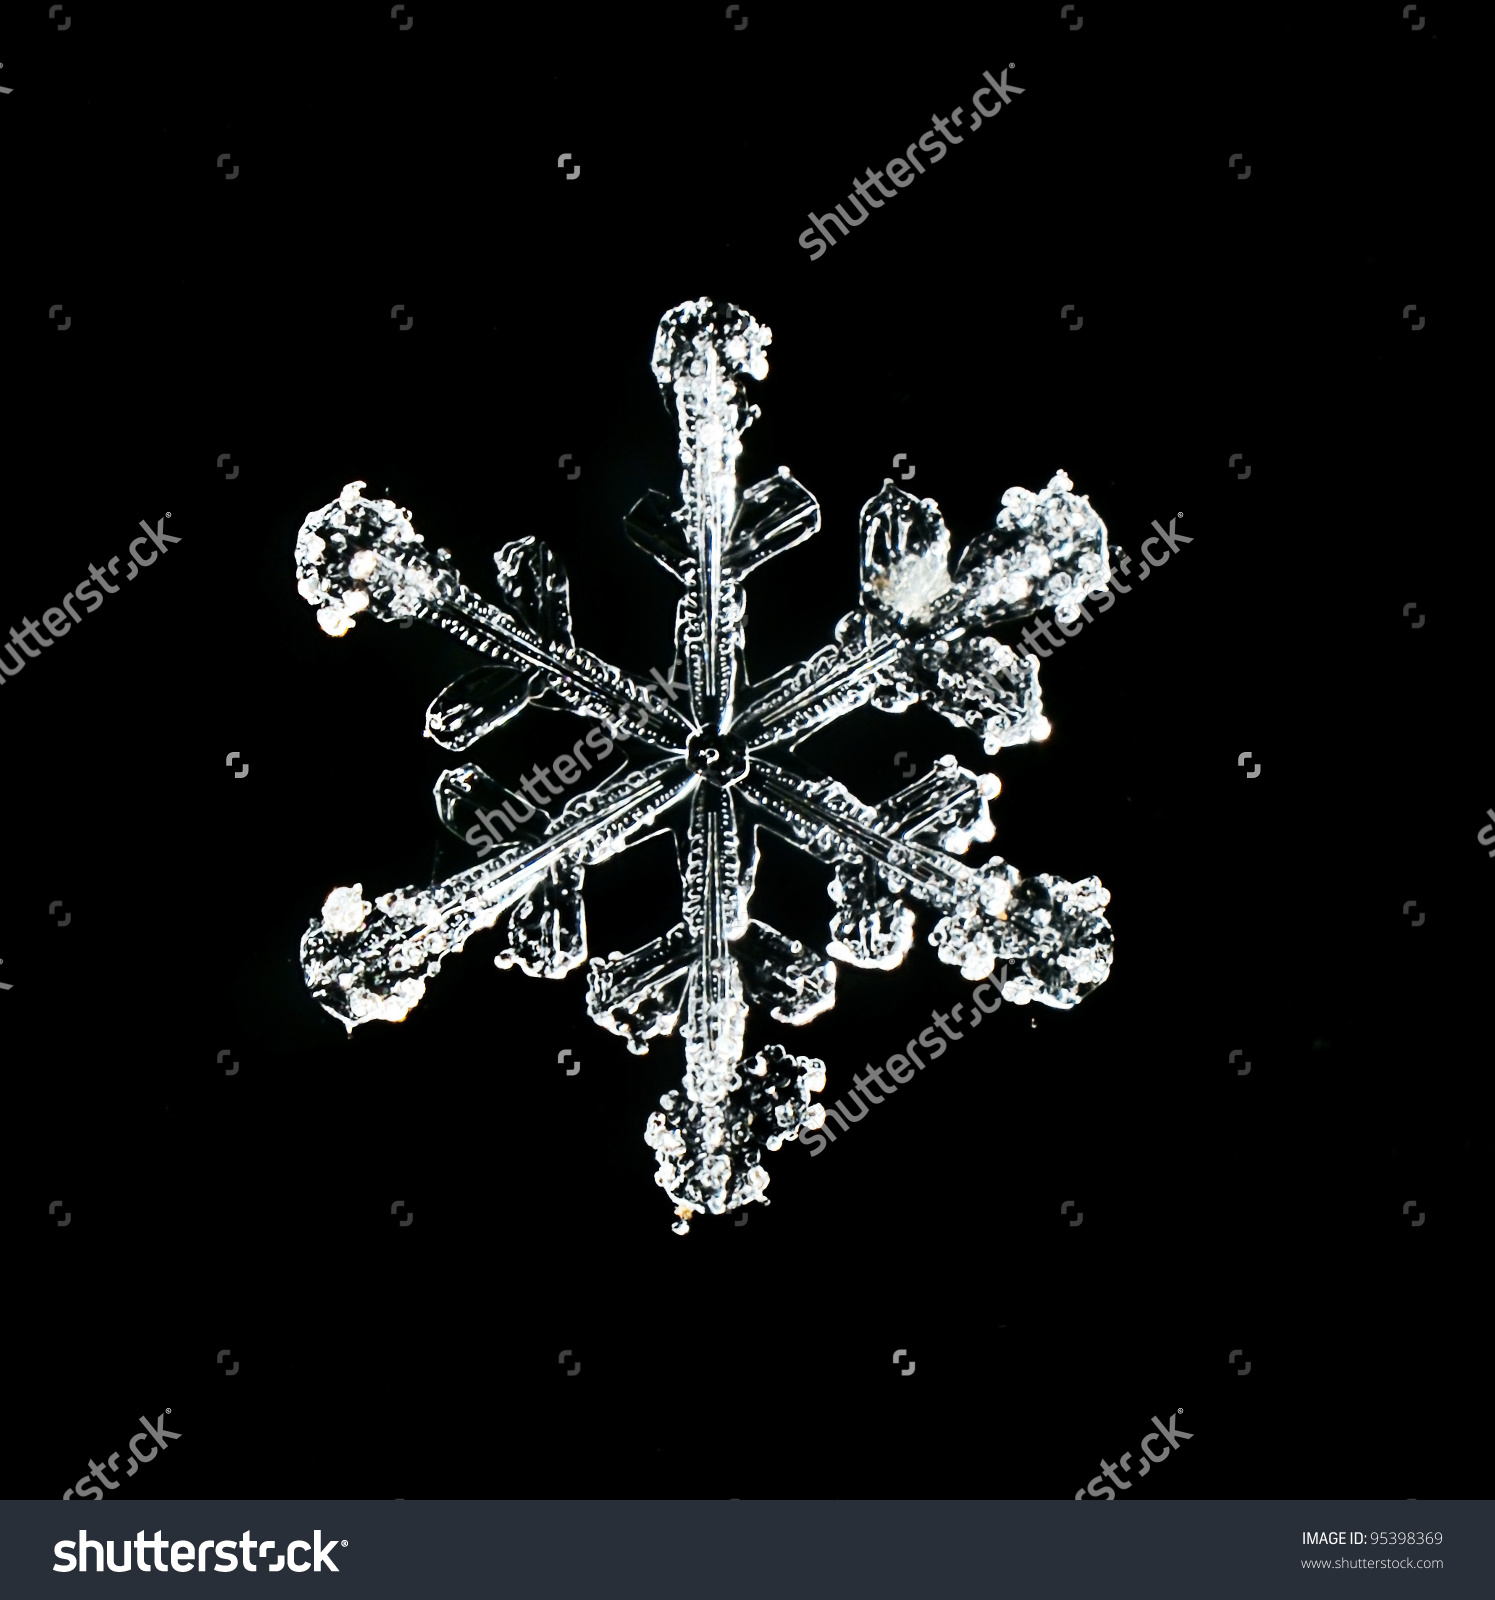 Real Snowflakes Water Crystals Stock Photo 95398369 : Shutterstock.